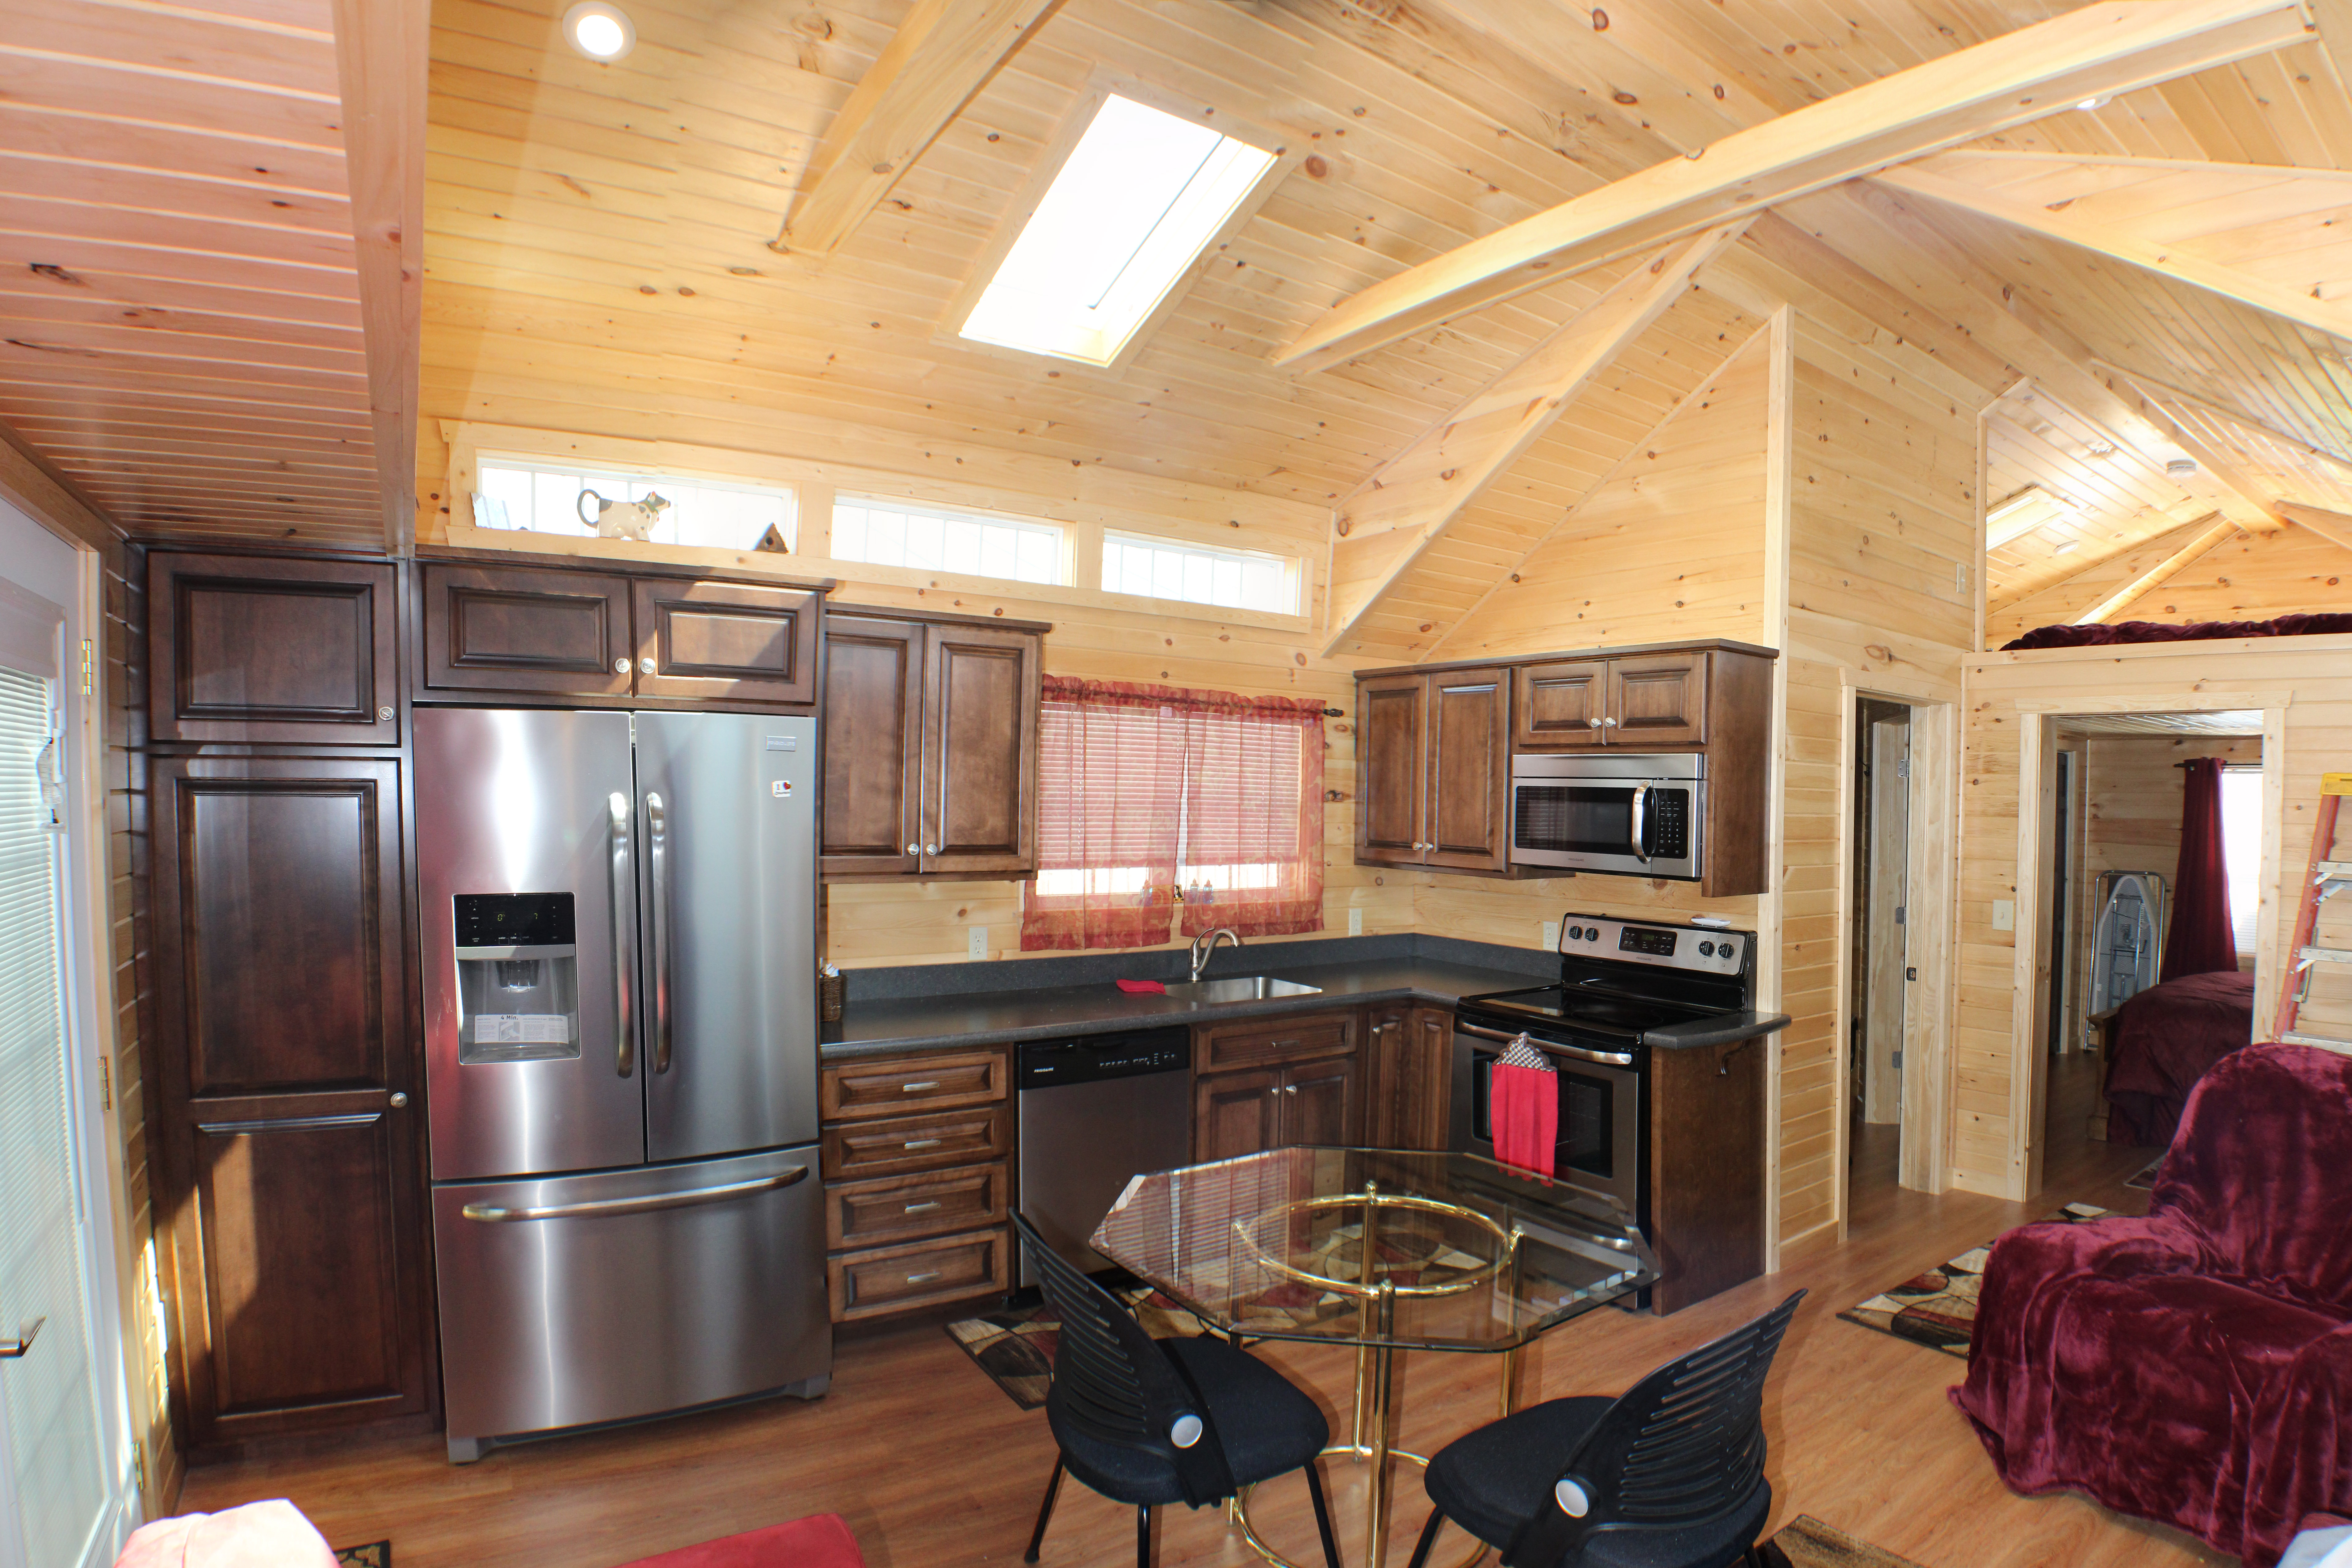 Sheds Unlimited Releases Tiny House Designs in PA